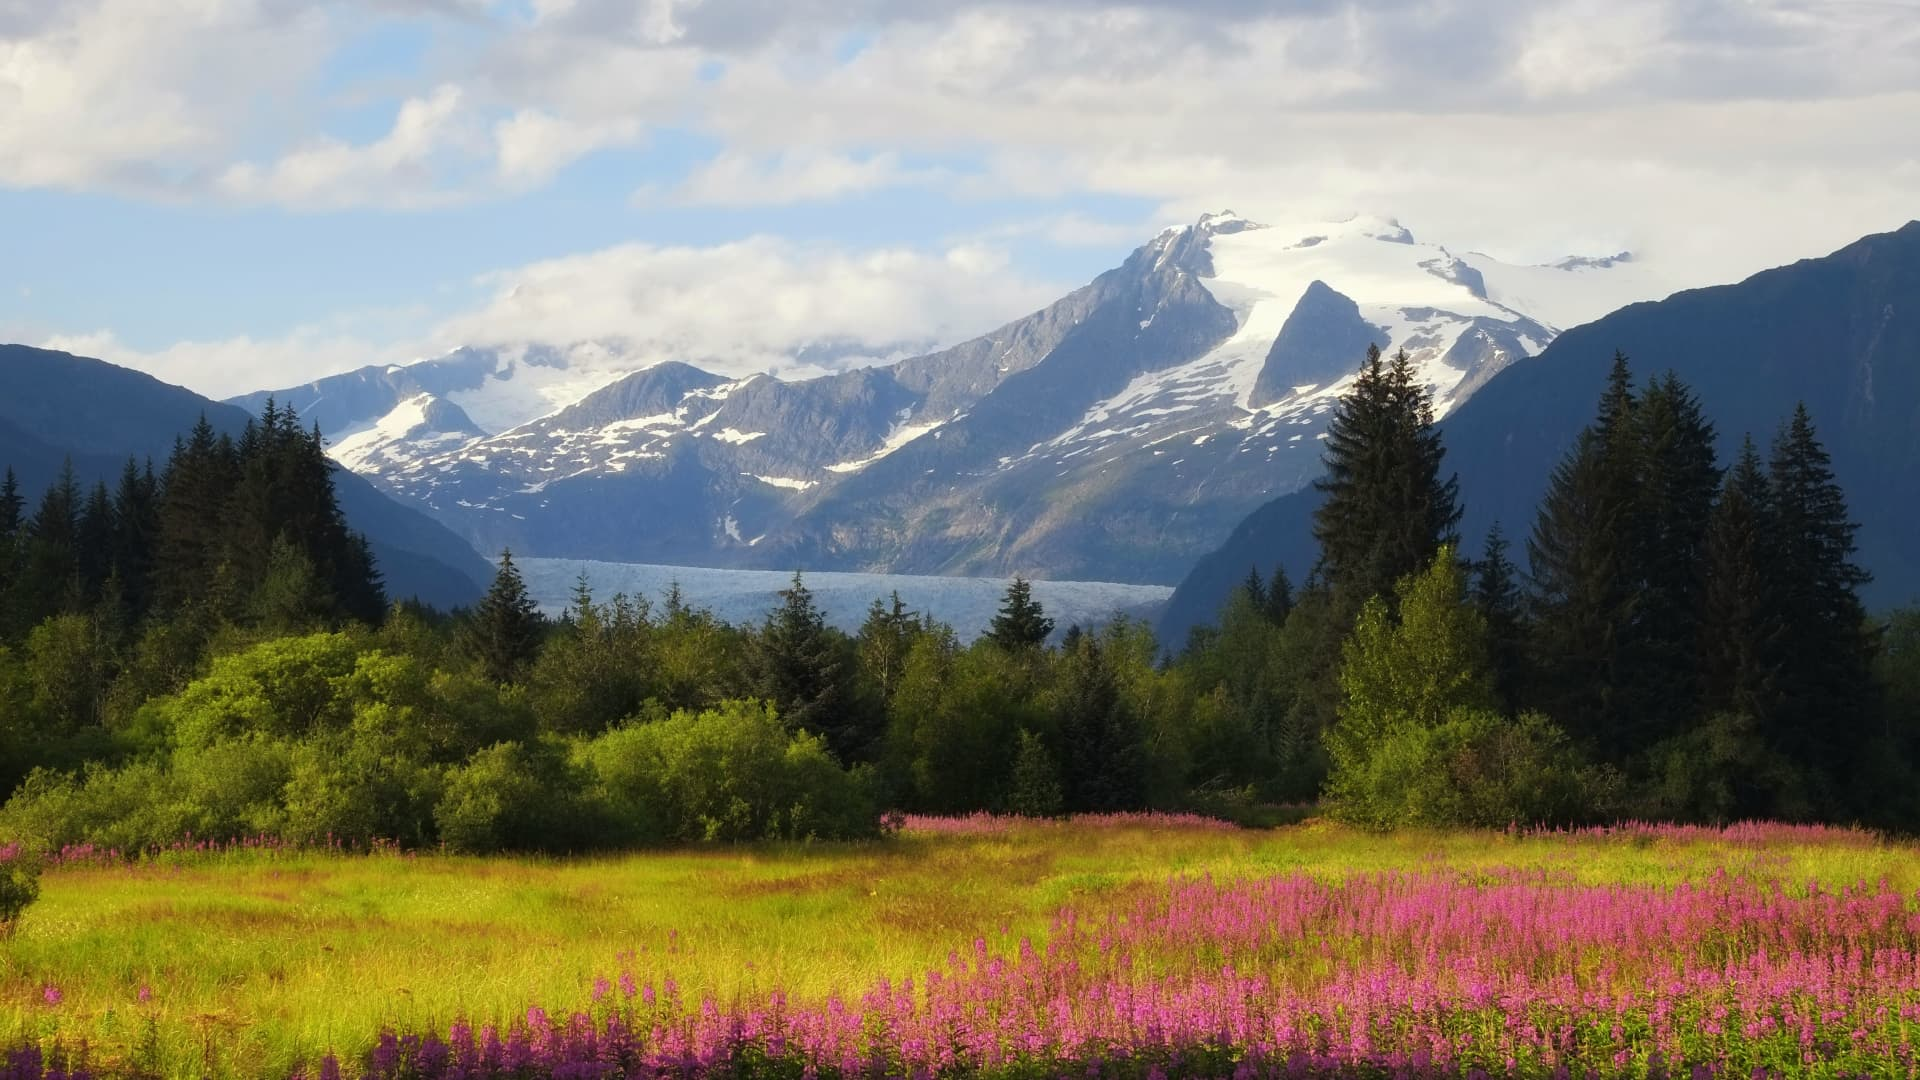 Guided tour operator Trafalgar is reporting a 56% increase in travel to Alaska this summer.